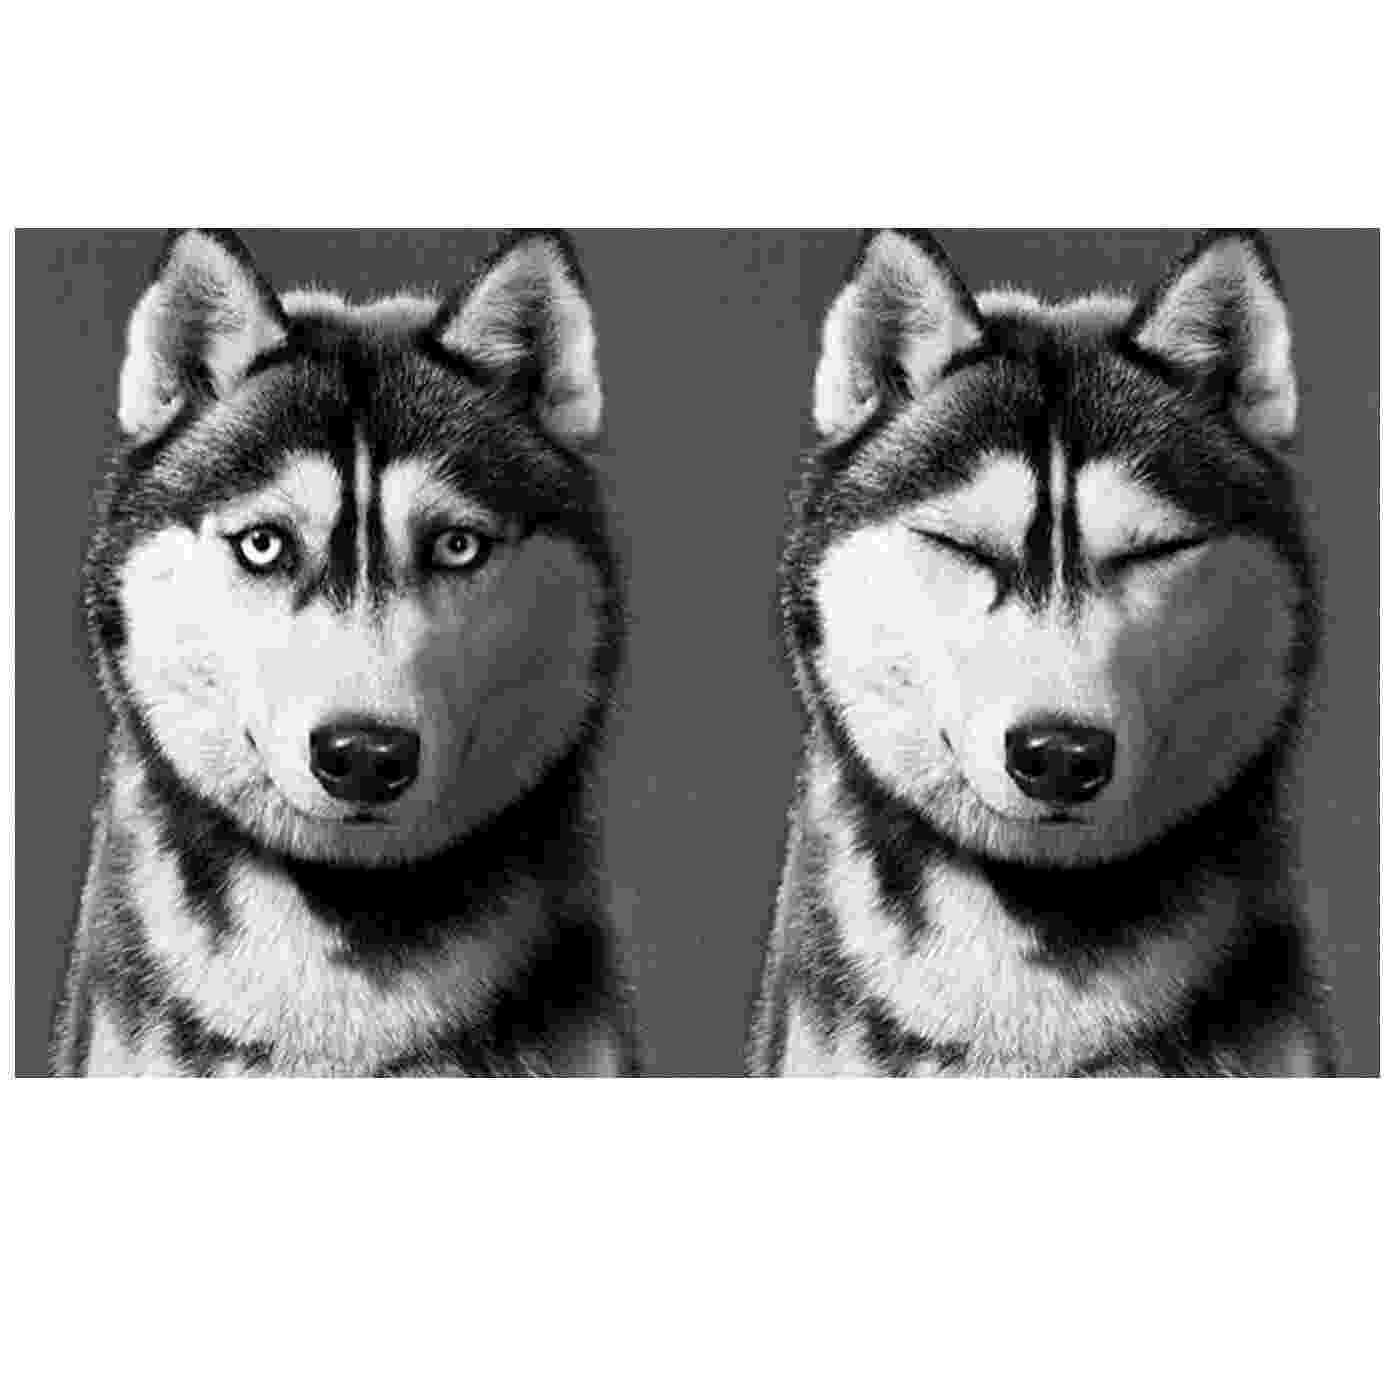 husky pictures to print husky coloring pages free printable coloring pages for kids print to husky pictures